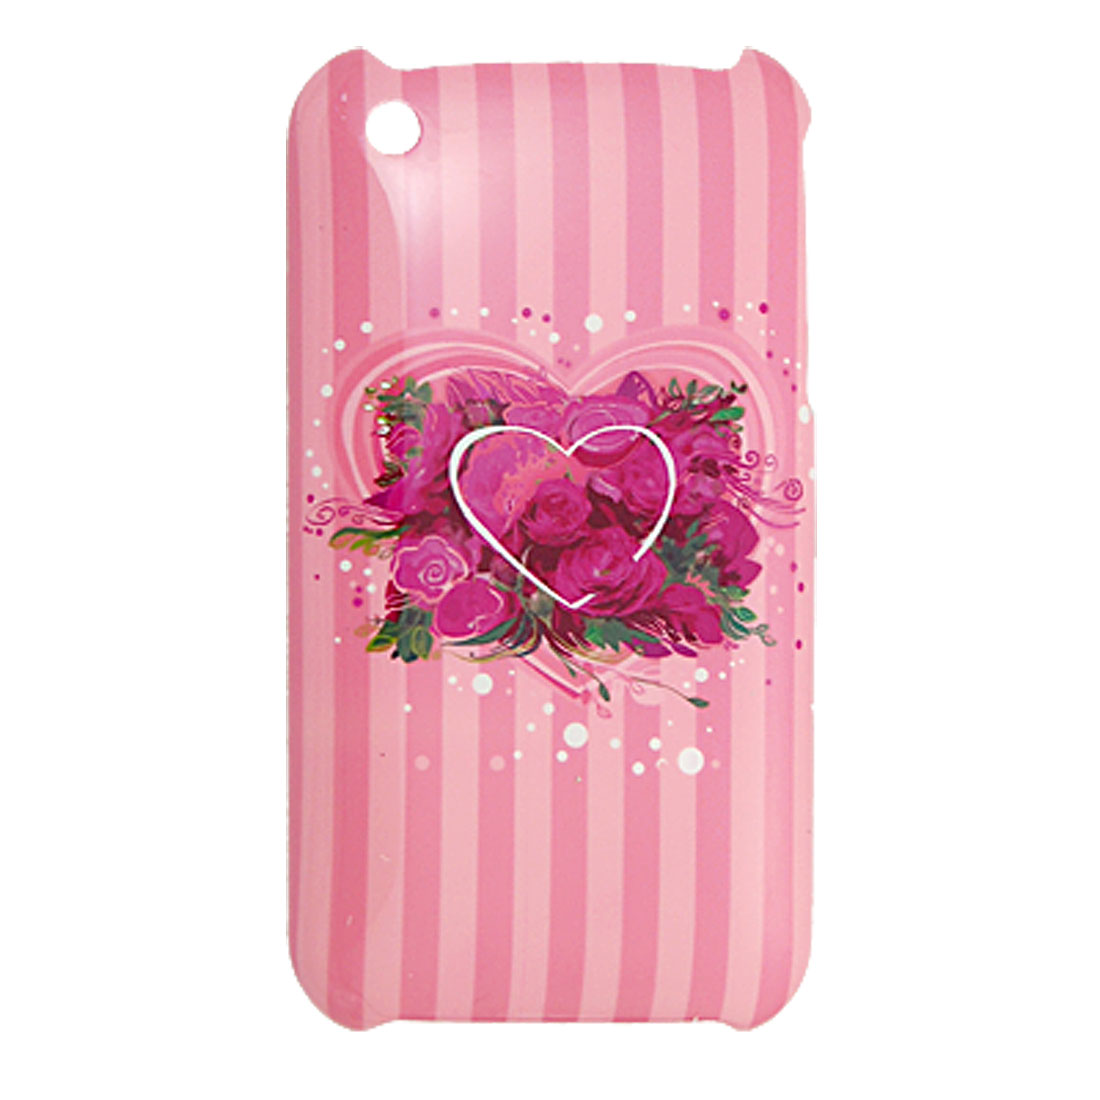 Rose Pink Flower Printed Plastic Back Cover for iPhone 3G